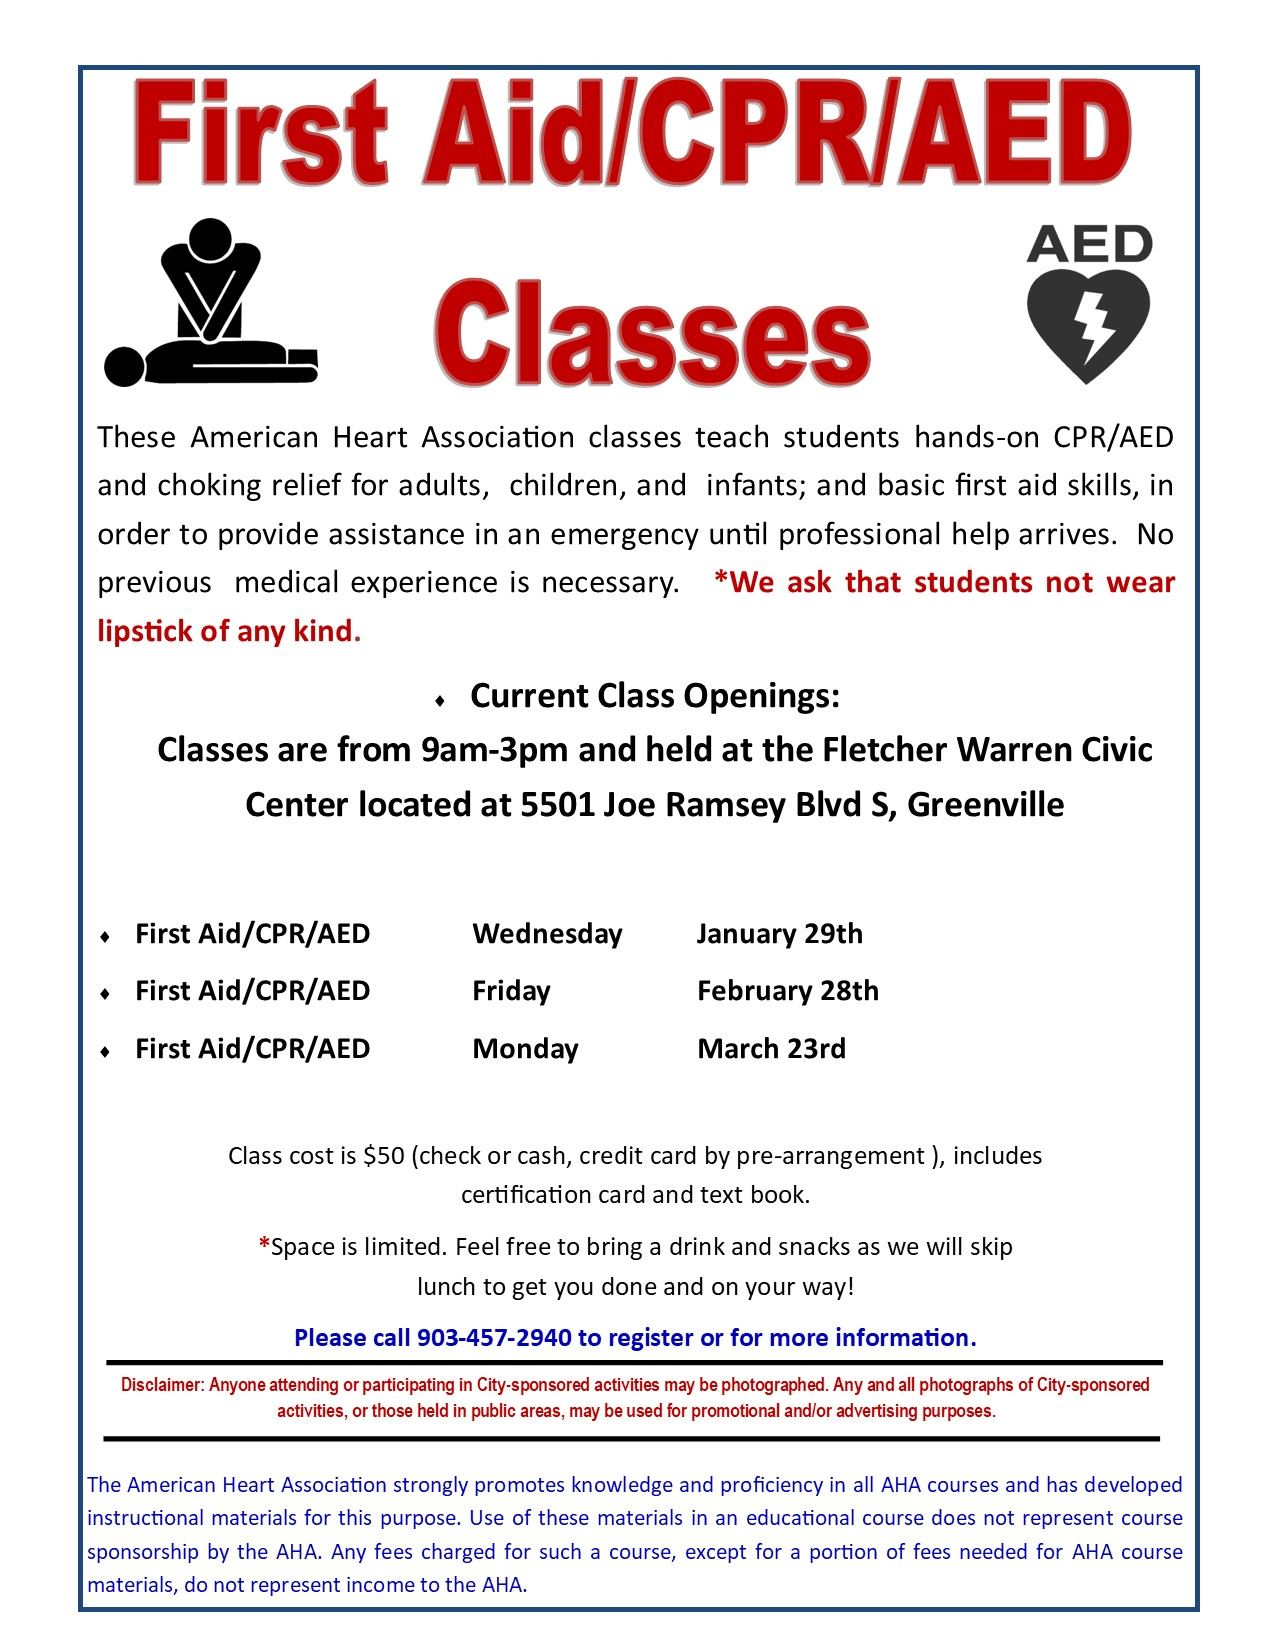 Heartsavers Flier Jan - Mar 2020 CPR/AED/FIRST AID CLASS